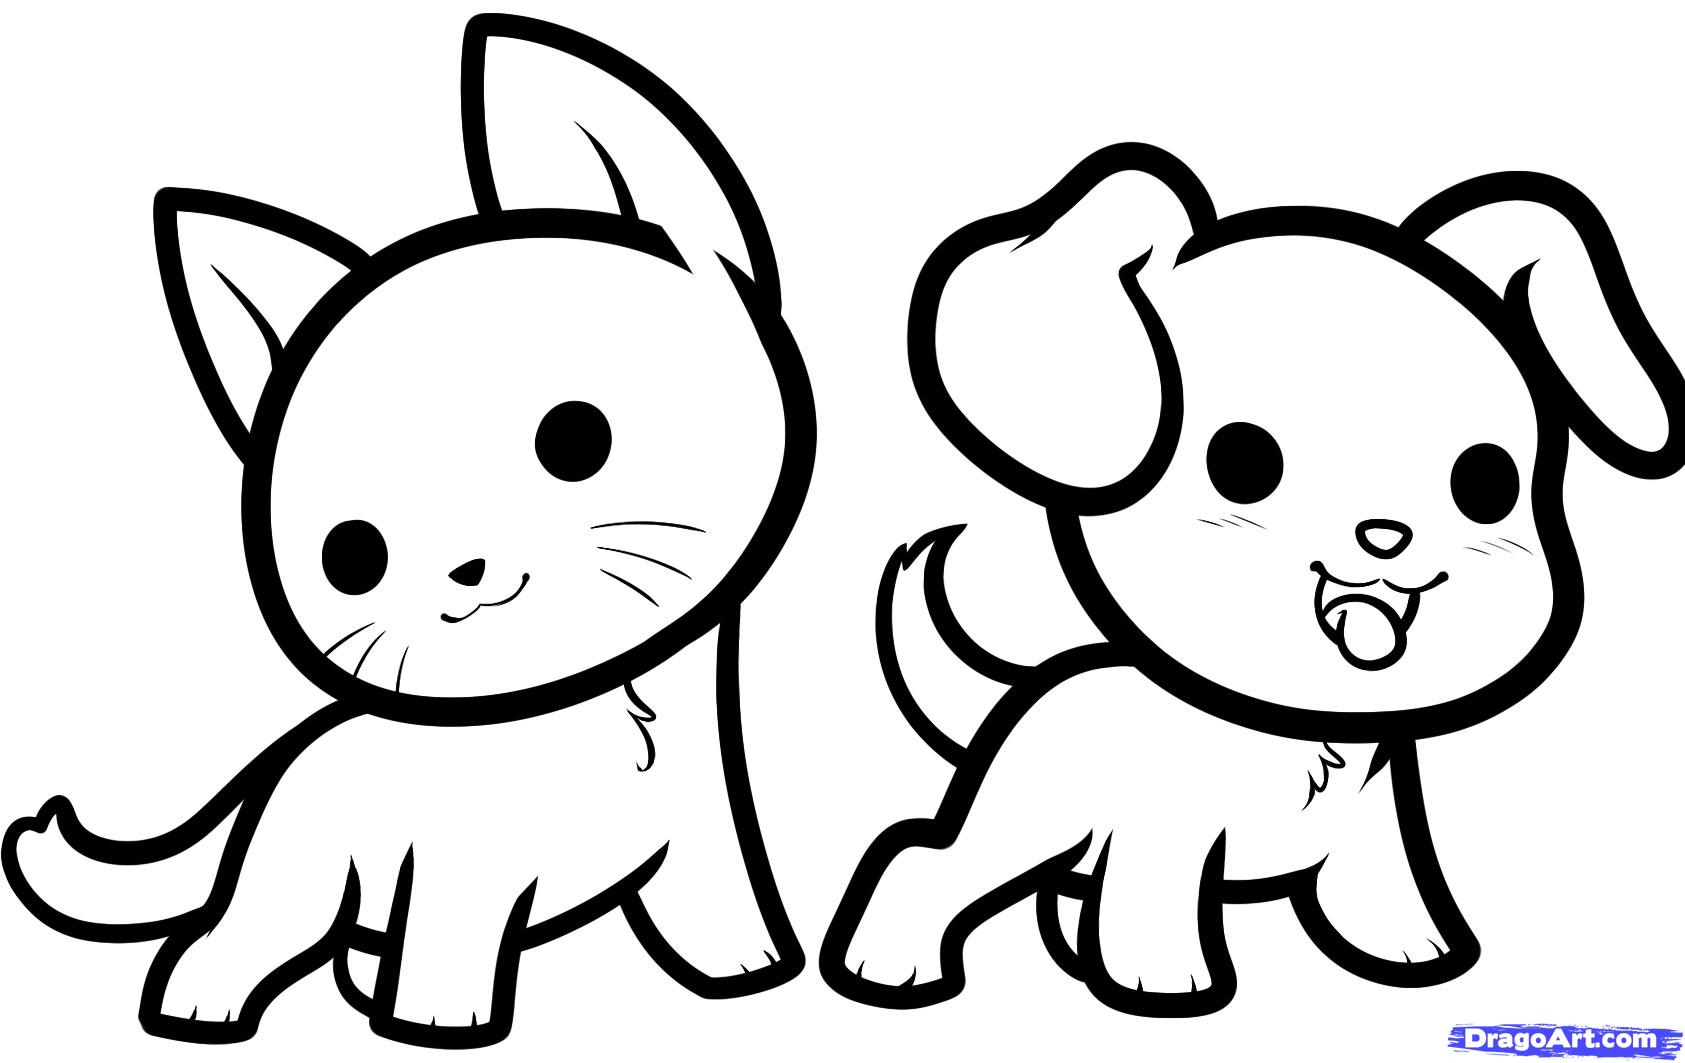 1685x1063 Anime Animal Coloring Pages For Girls Free Printable Cartoons